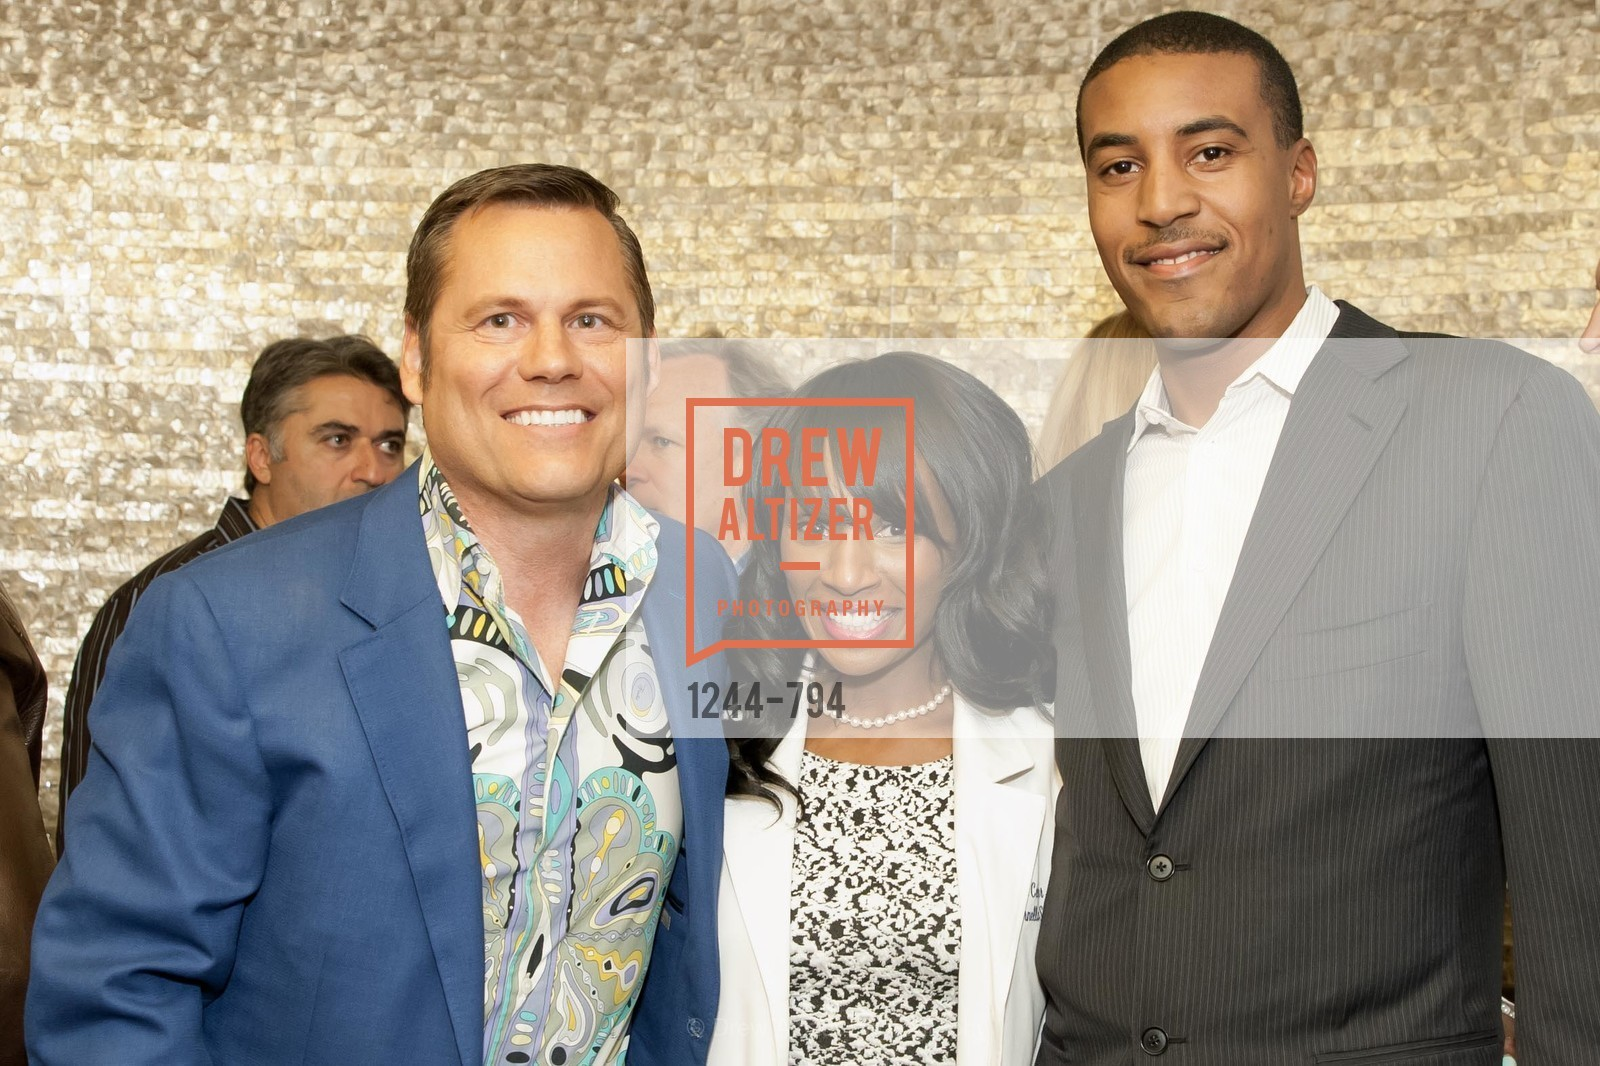 Mark Calvano, Pernella Sommerville, EPI CENTER MedSpa Anniversary and Launch of REPLETE - Evening Celebration, US, April 22nd, 2015,Drew Altizer, Drew Altizer Photography, full-service agency, private events, San Francisco photographer, photographer california